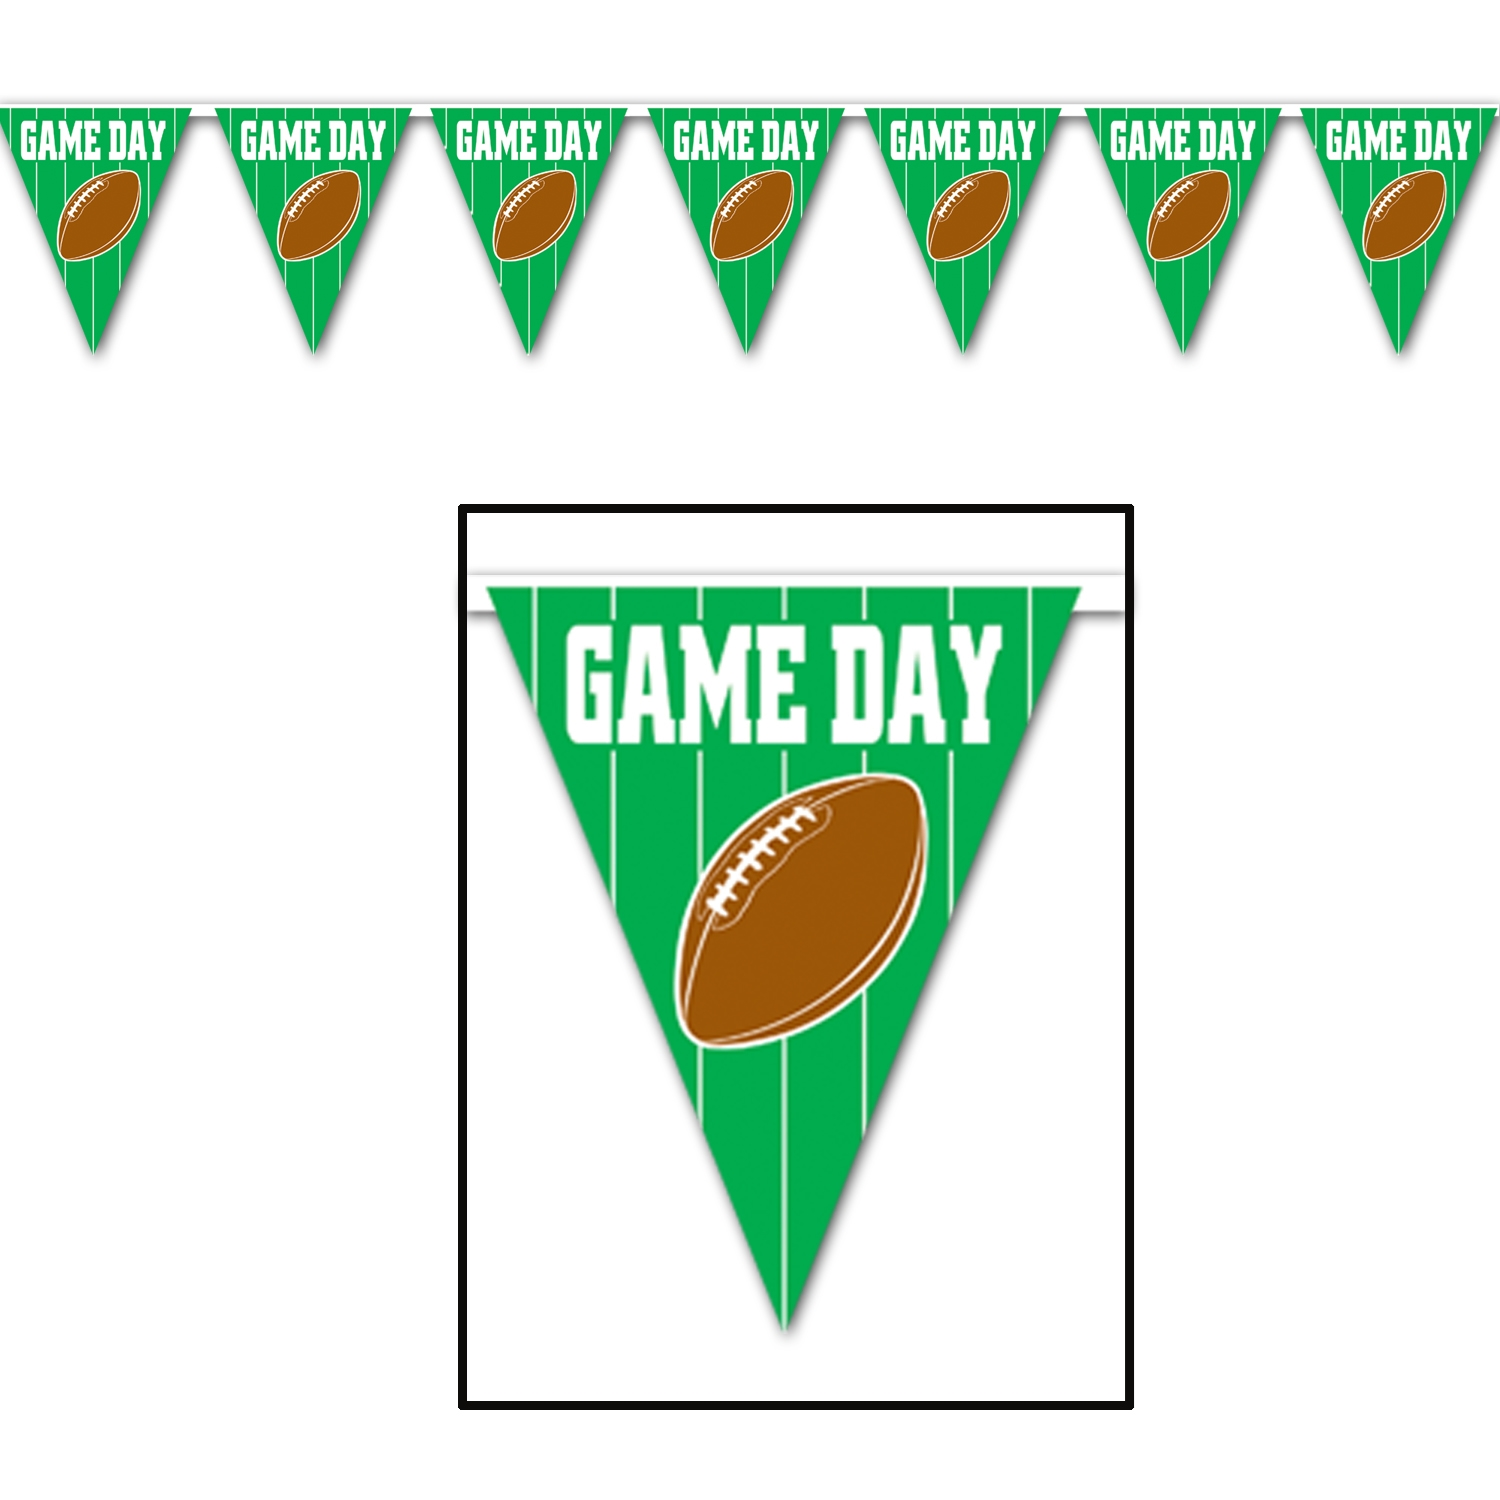 Game Day Football Pennant Banner (Pack of 12) Game Day Banner, Football Pennant Banner, Pennant Banner, Hanging Decorations, Football ideas, Game Day ideas, Wholesale party supplies, Inexpensive party, Cheap decor, Indoor Outdoor decor, All Weather banner